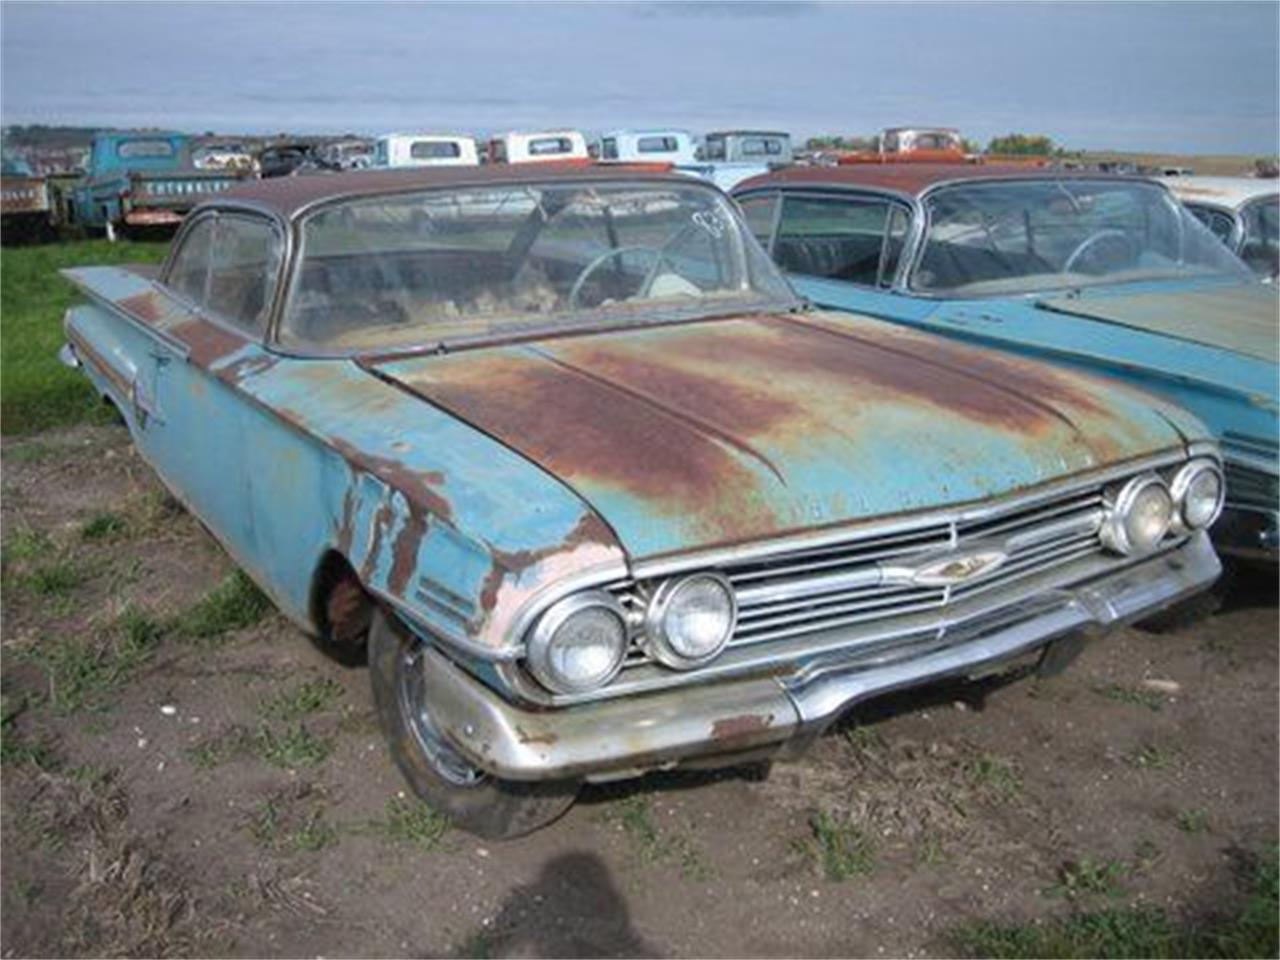 Large Picture of 1960 Chevrolet Impala - $10,995.00 Offered by Classic Car Deals - Q4BT